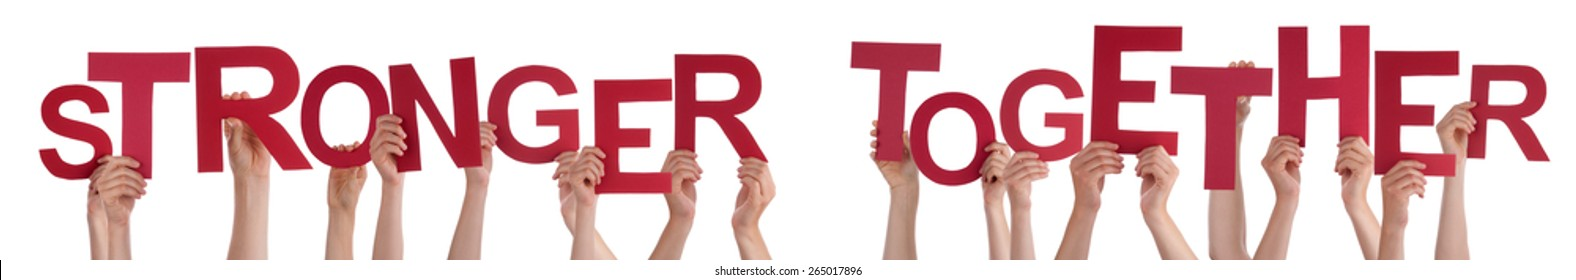 Many Caucasian People And Hands Holding Red Letters Or Characters Building The Isolated English Word Stronger Together On White Background